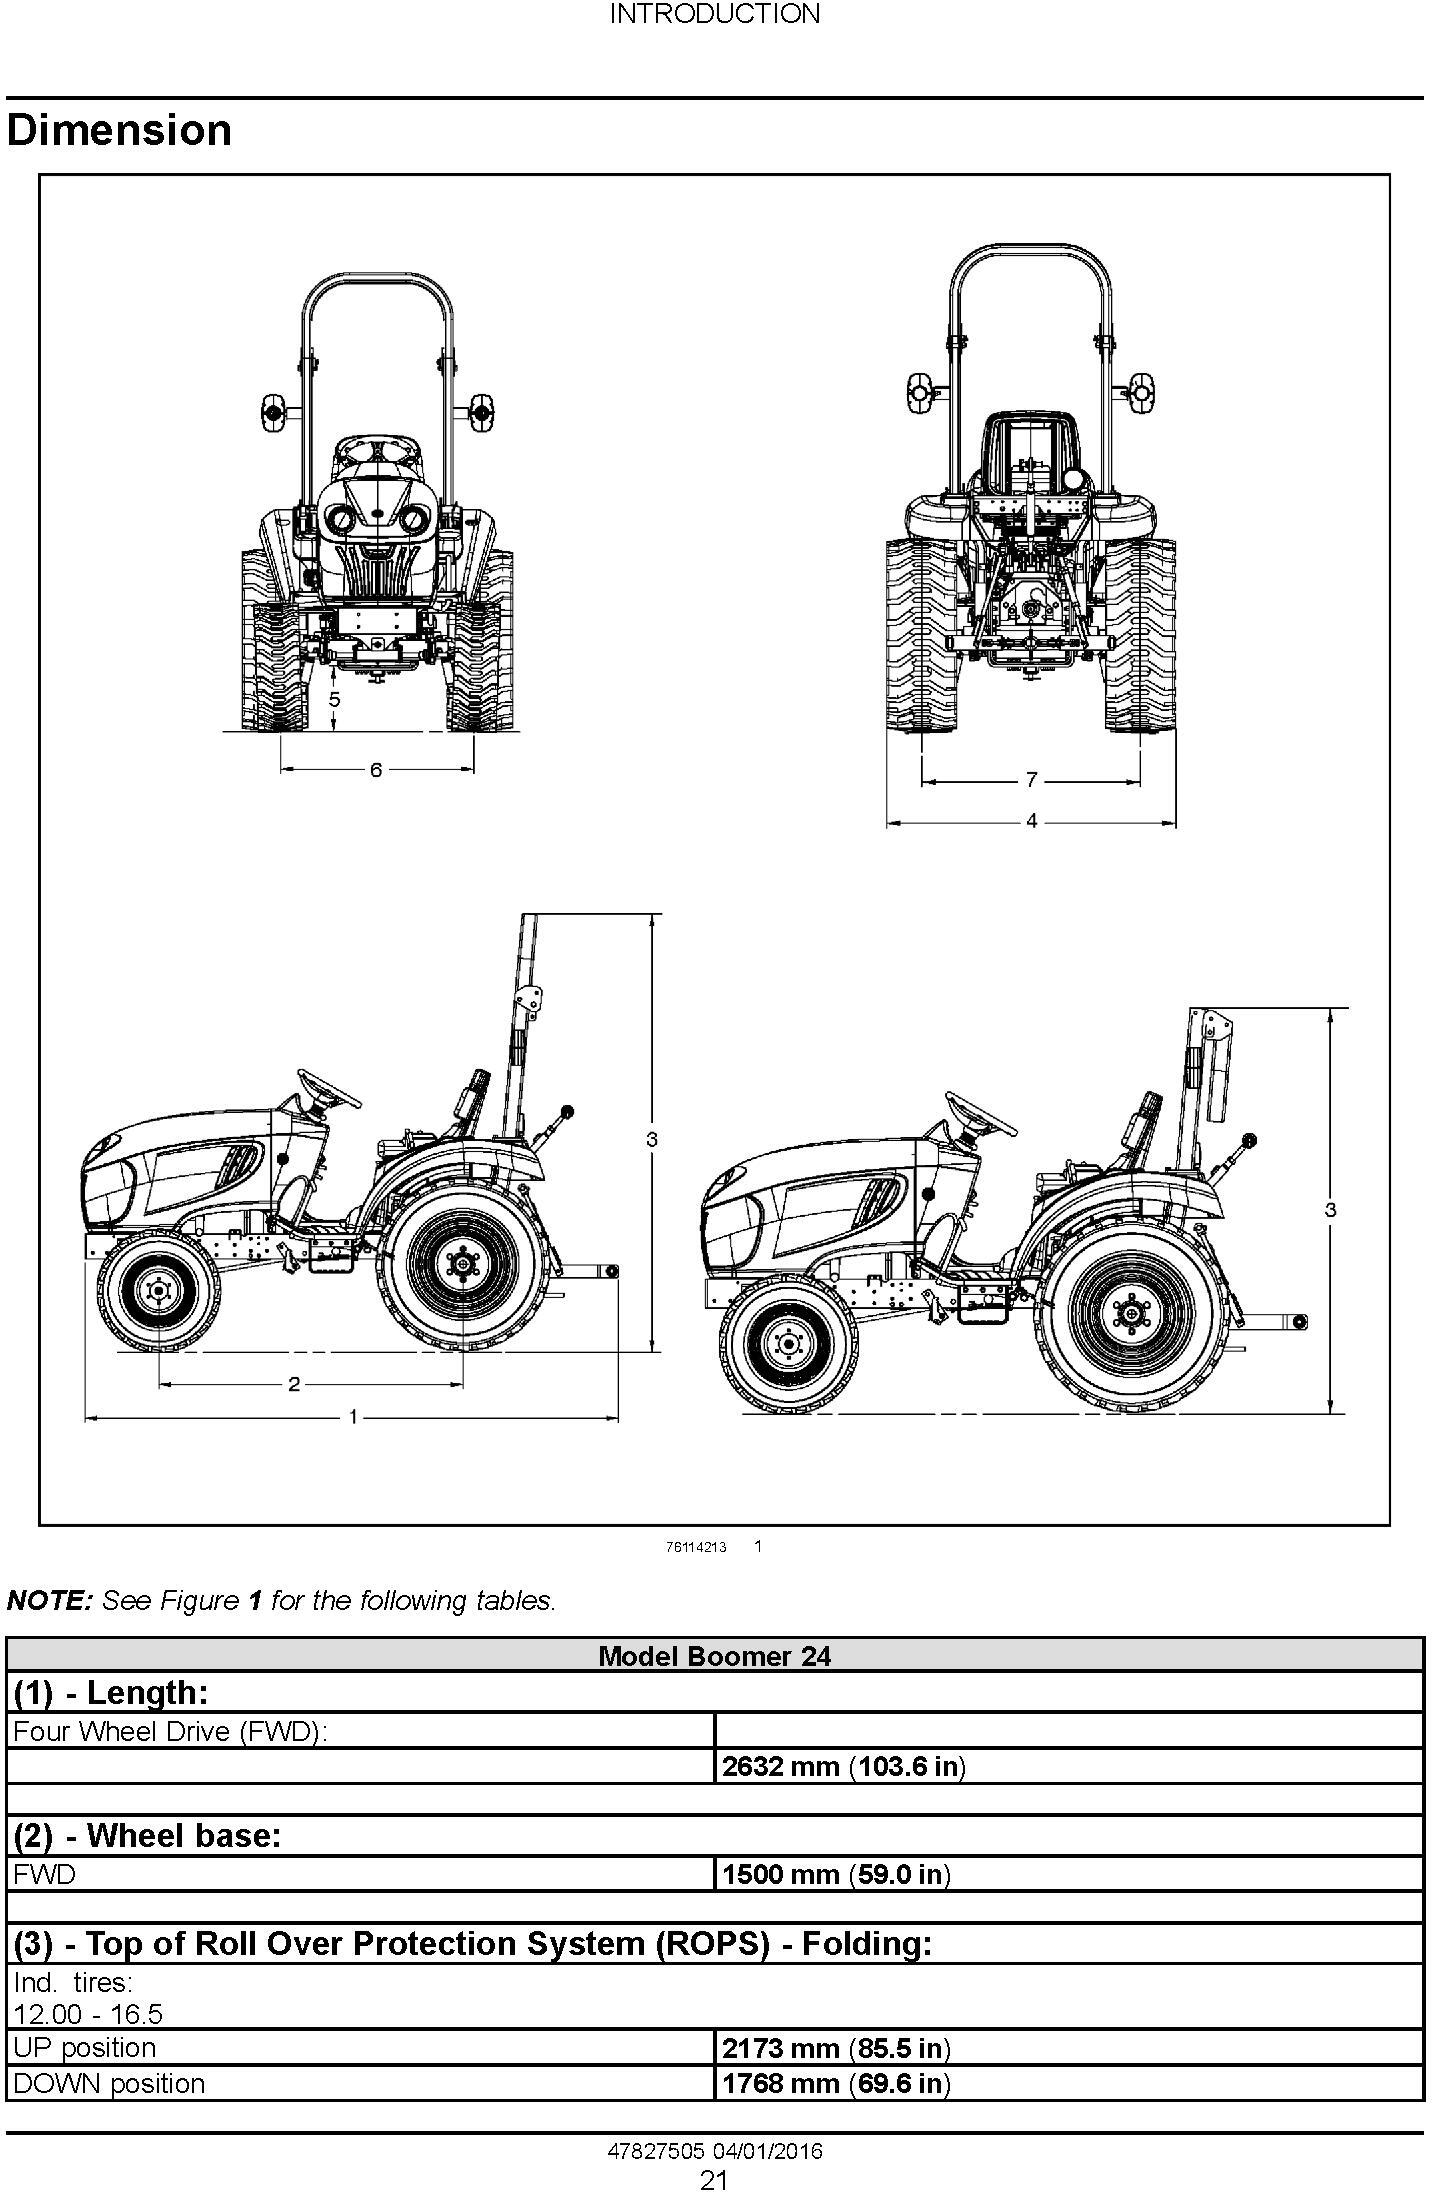 New Holland Boomer 24 Tier 4B final Tractor Complete Service Manual (North America) - 1